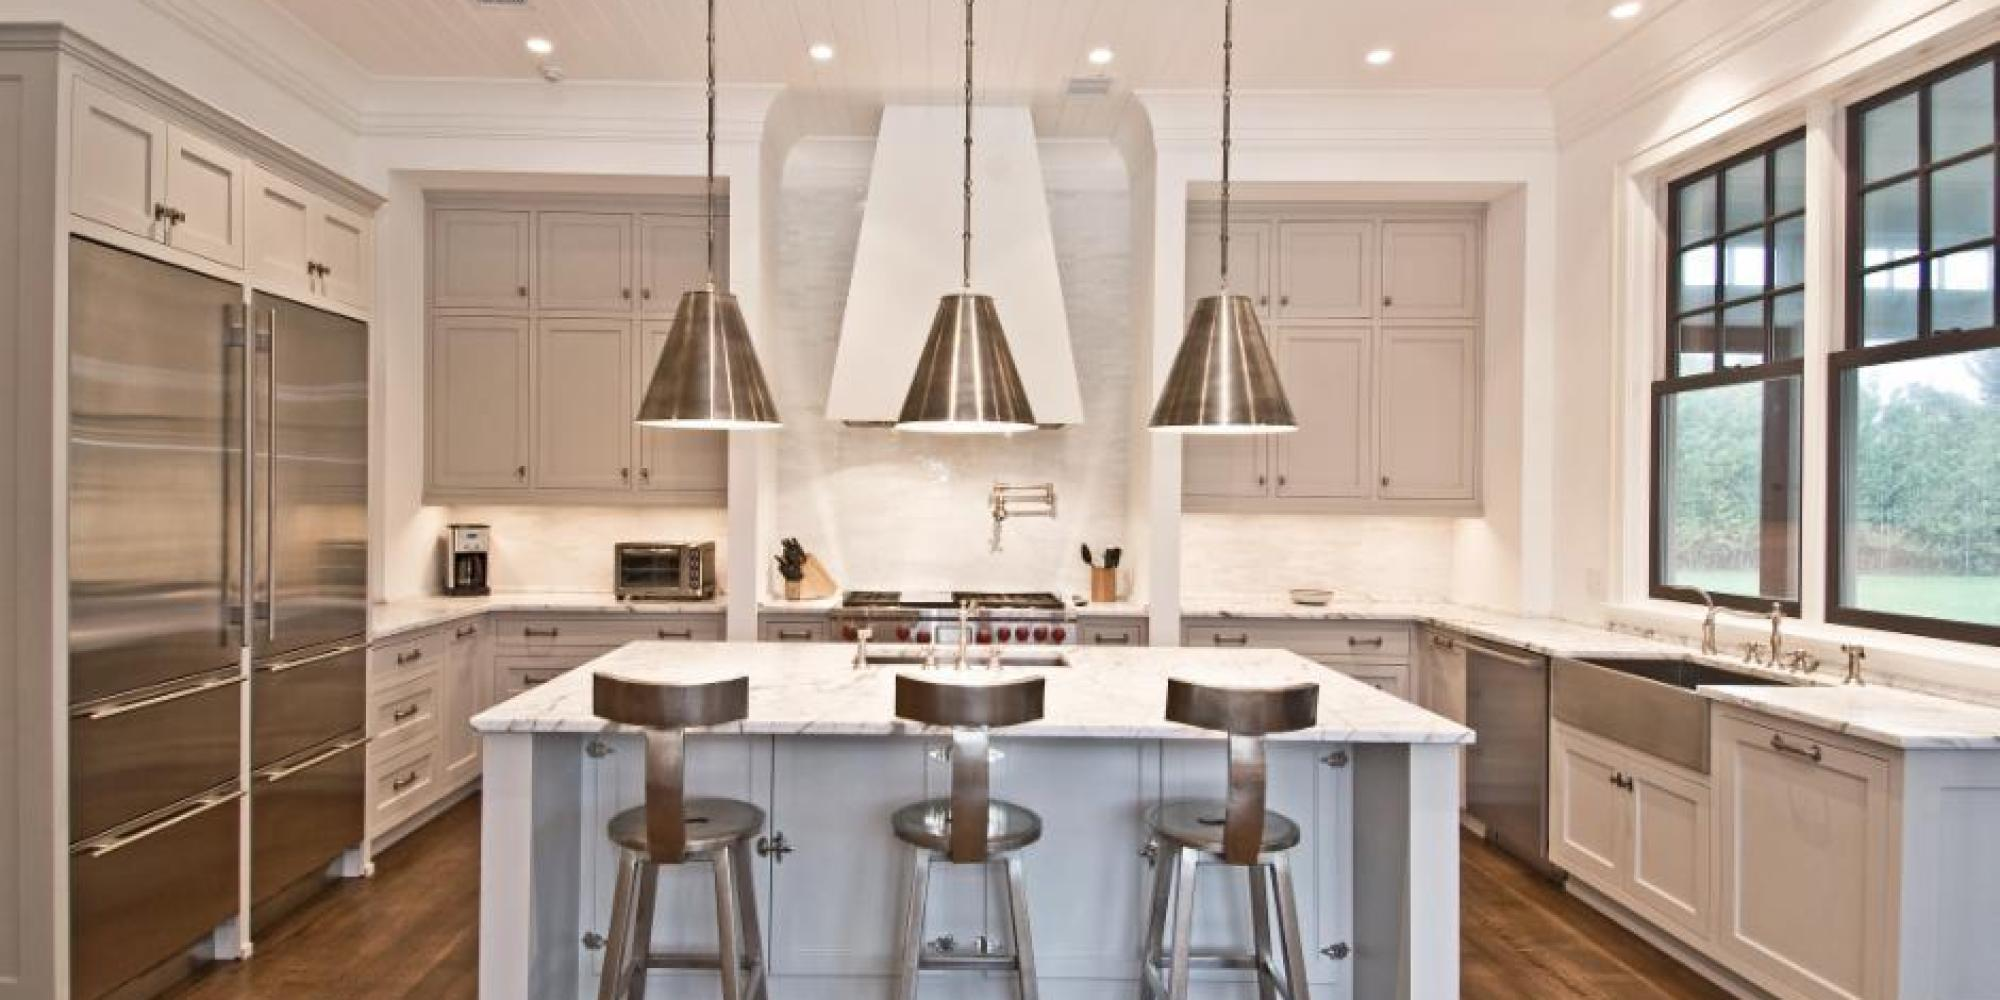 Cheerful Paint Colors Subway Tile Brown Glaze Cream Kitchen Cabinets Kitchen Huffpost Cream Kitchen Cabinets Every Type houzz-02 Cream Kitchen Cabinets